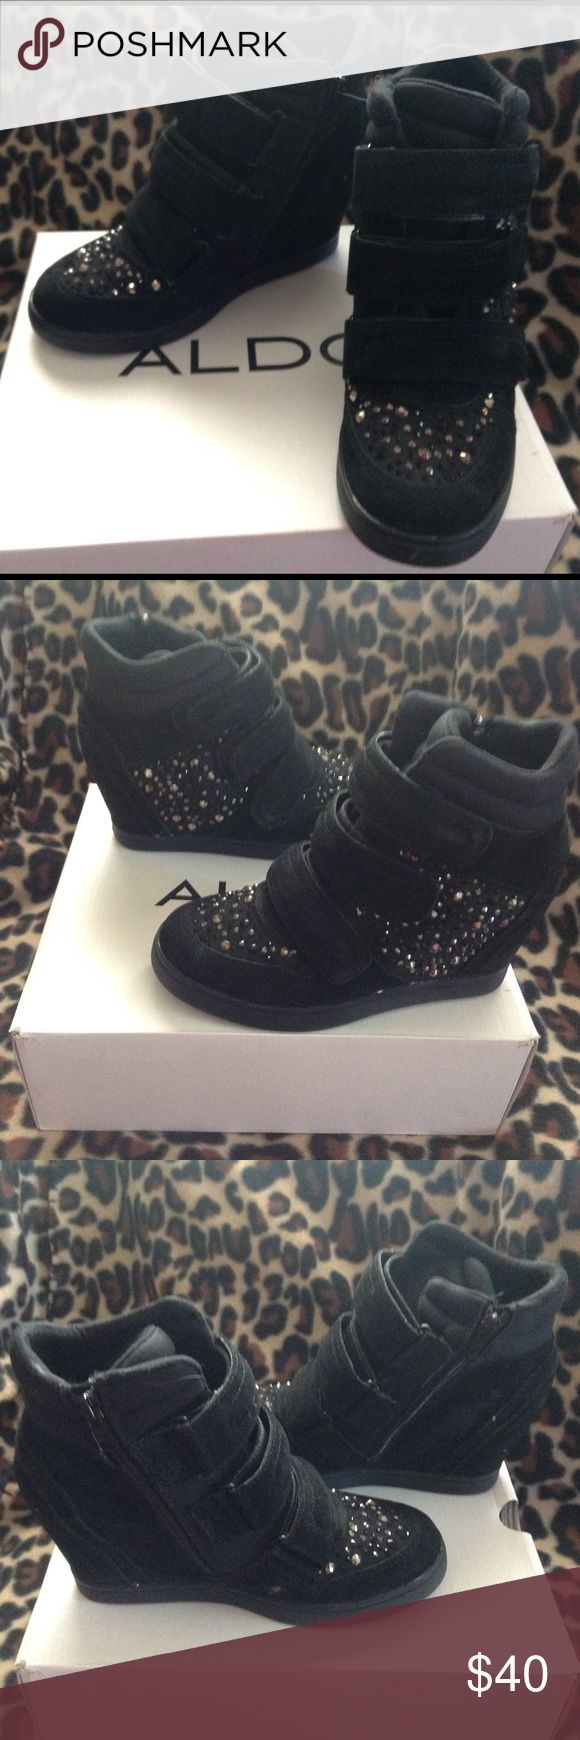 NIB Aldo High Wedge 👟 Sneakers! Brand-new in box ALDO Black wedge sneakers with rhinestones.  Brand-new never worn. Comes with Velcro straps and zipper for easy on and off.  Wedge approximately 4 inches high.  Ultra cute. No stones missing. Size 8. Great deal retail $110. Aldo Shoes Sneakers